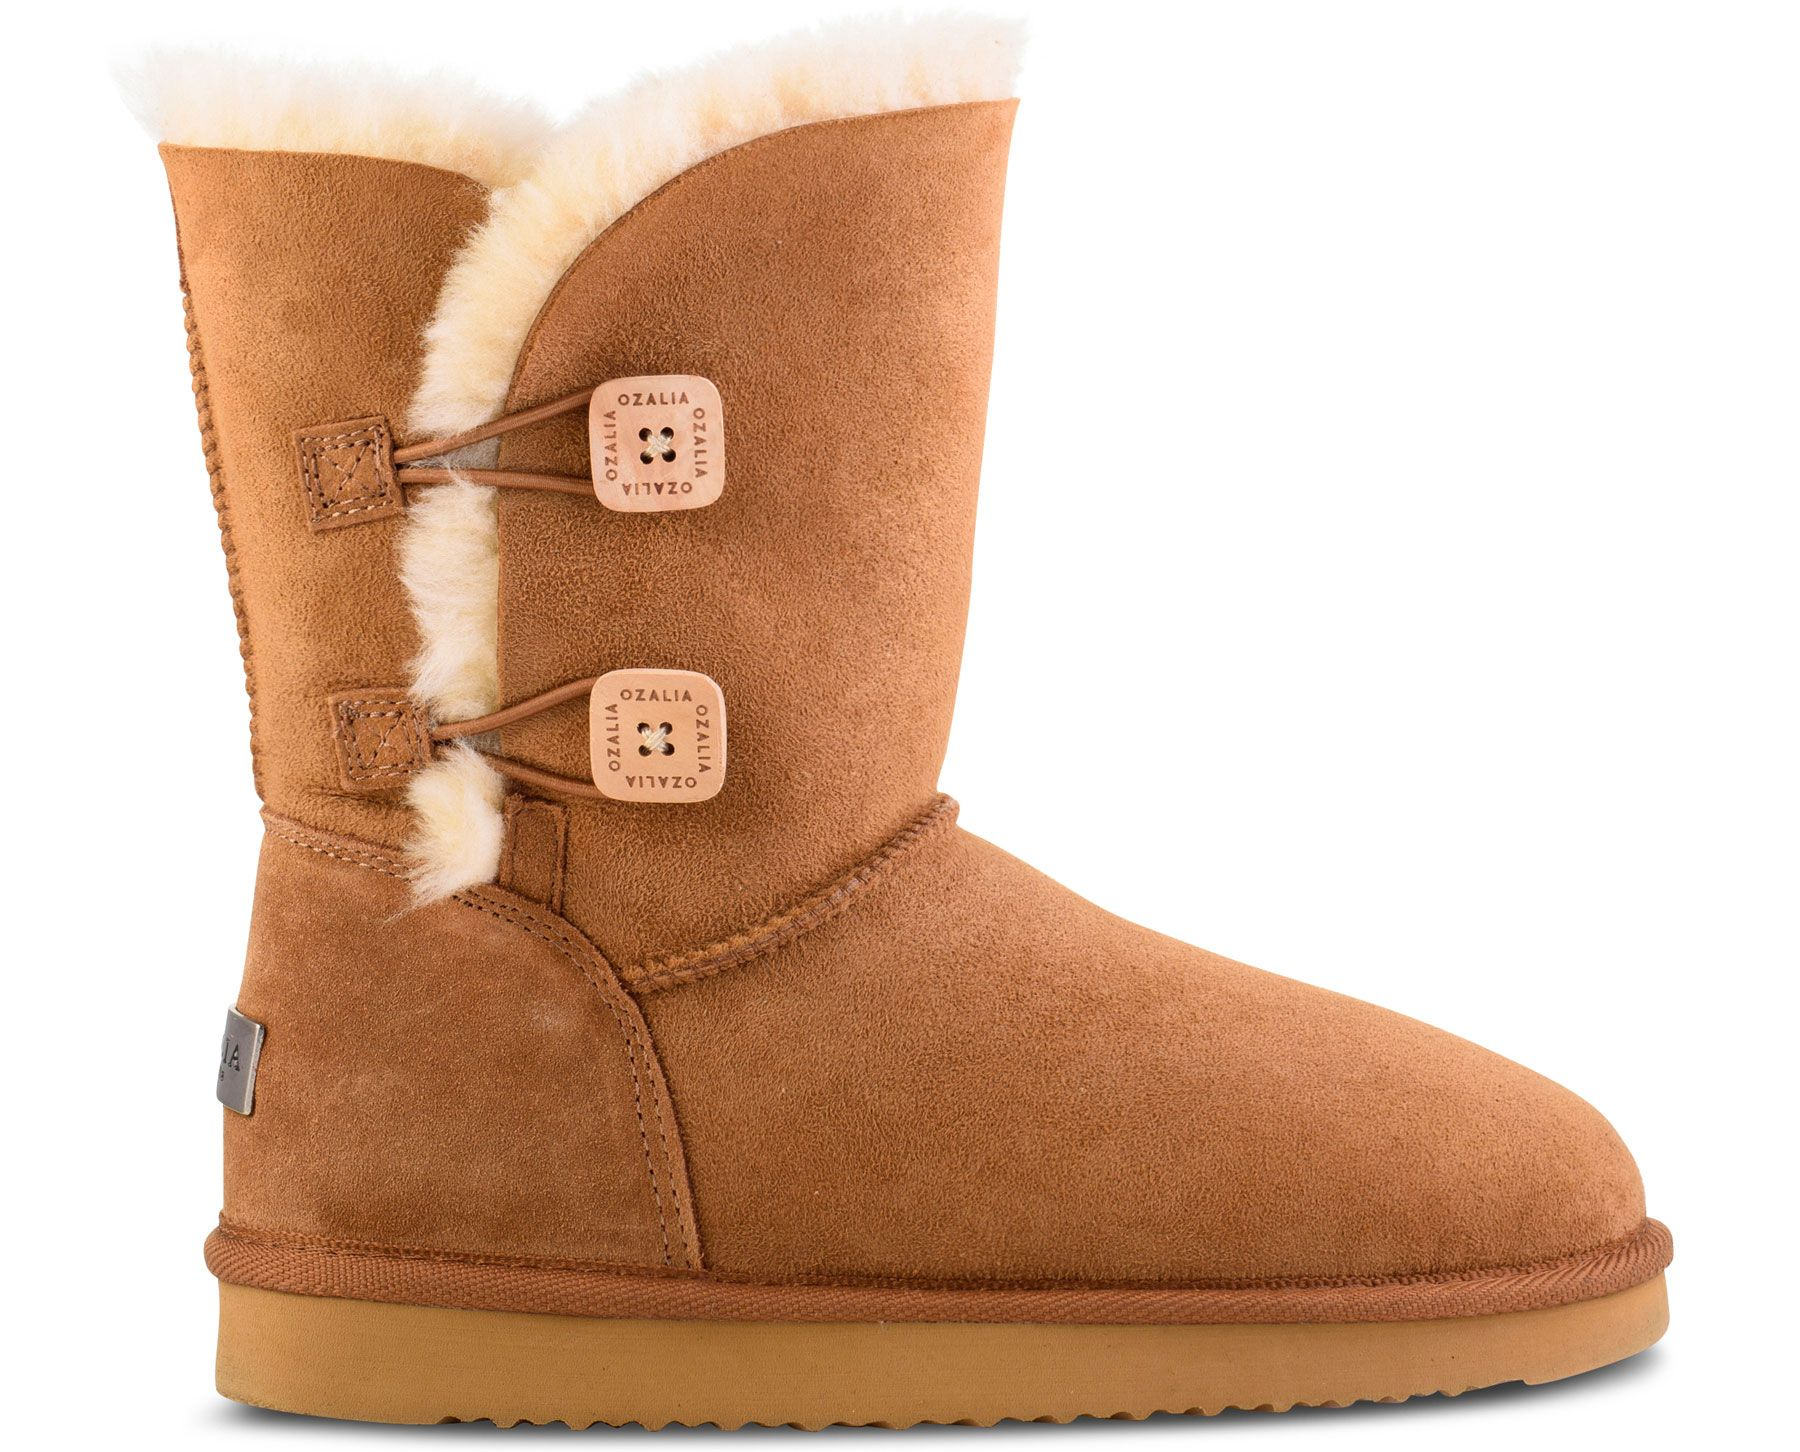 Australian icon as 'Ugg' boots under